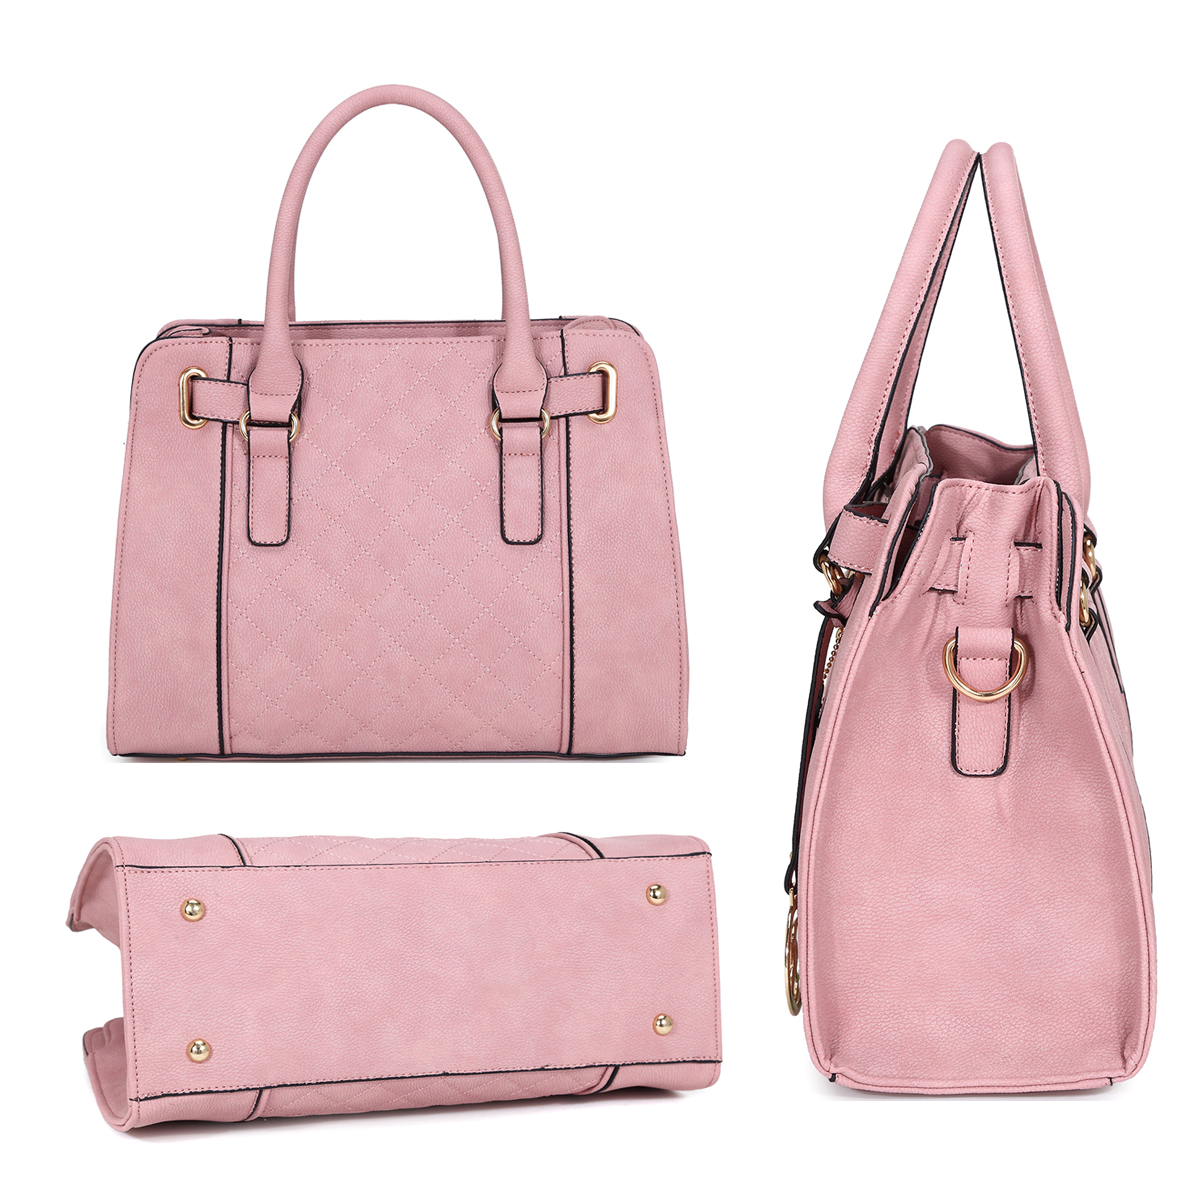 Medium Satchel with Shoulder Strap